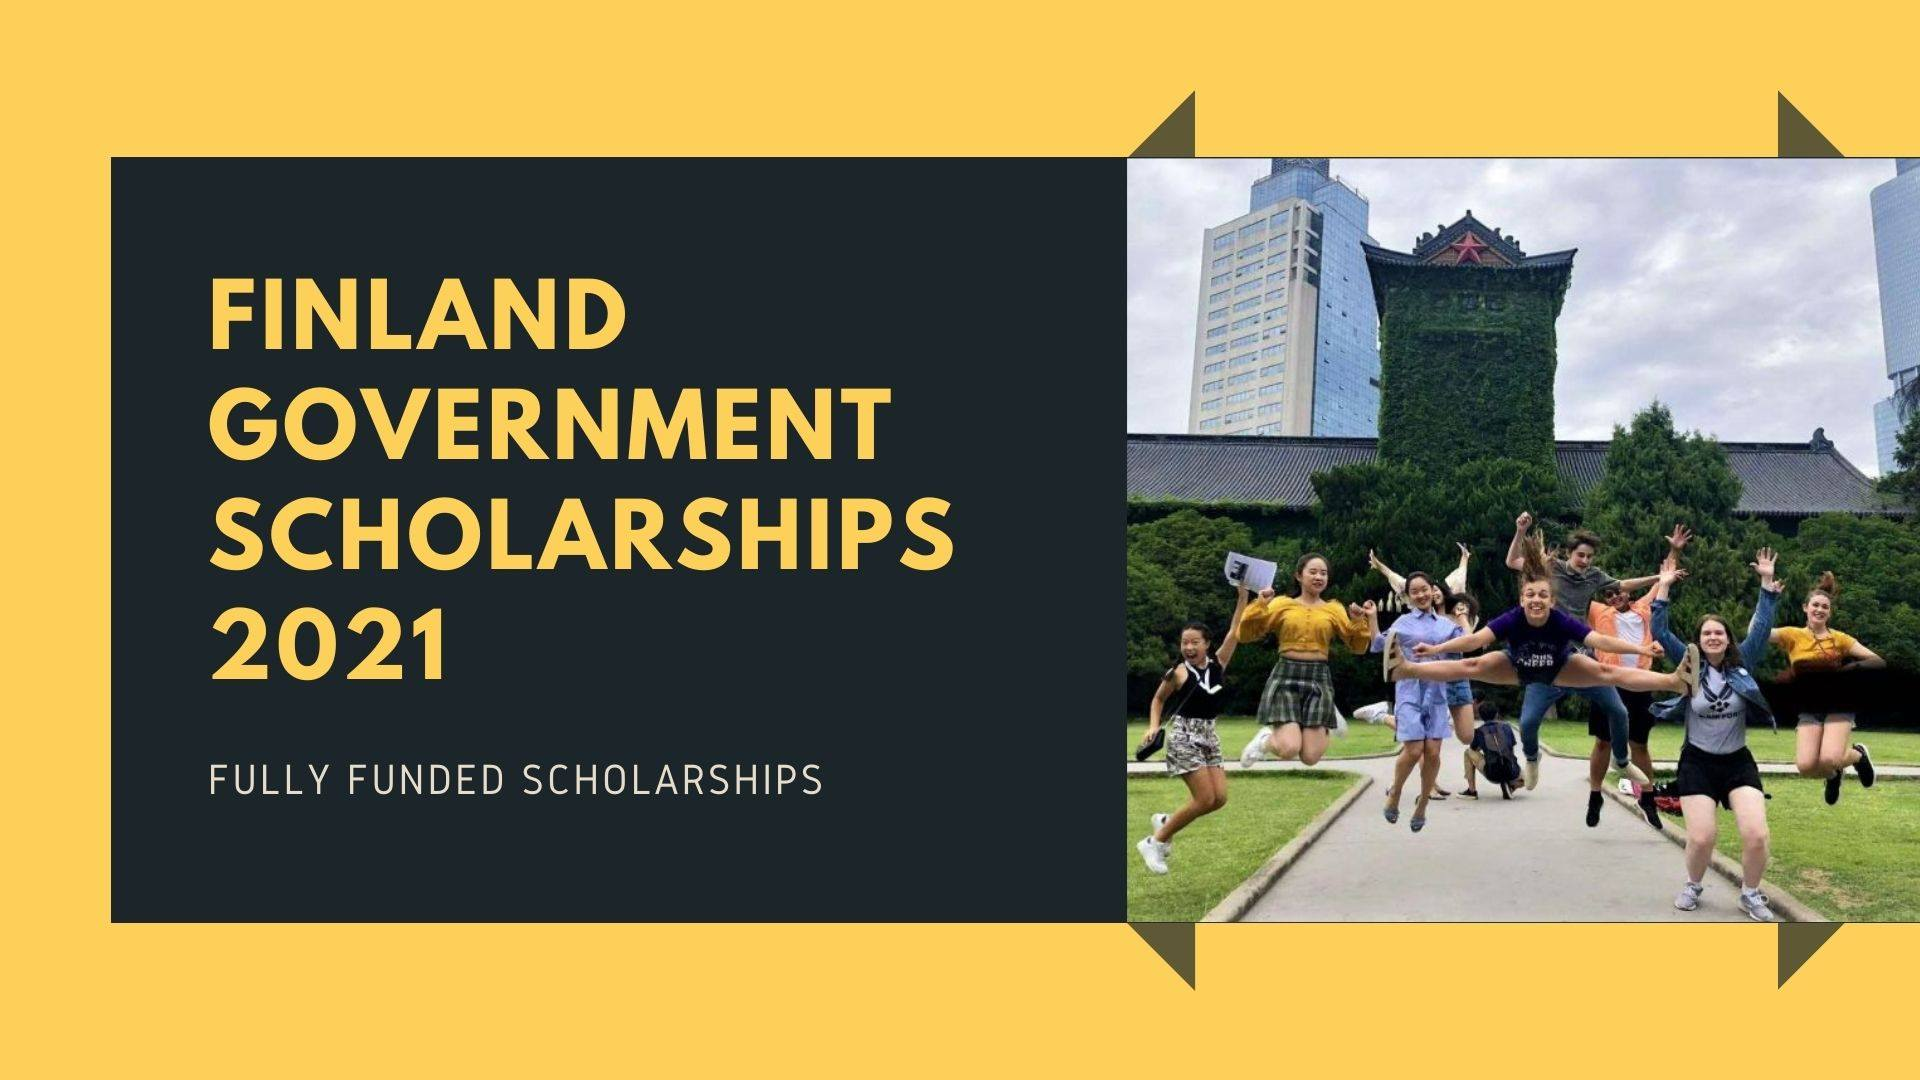 Finland-government-scholarships-2021